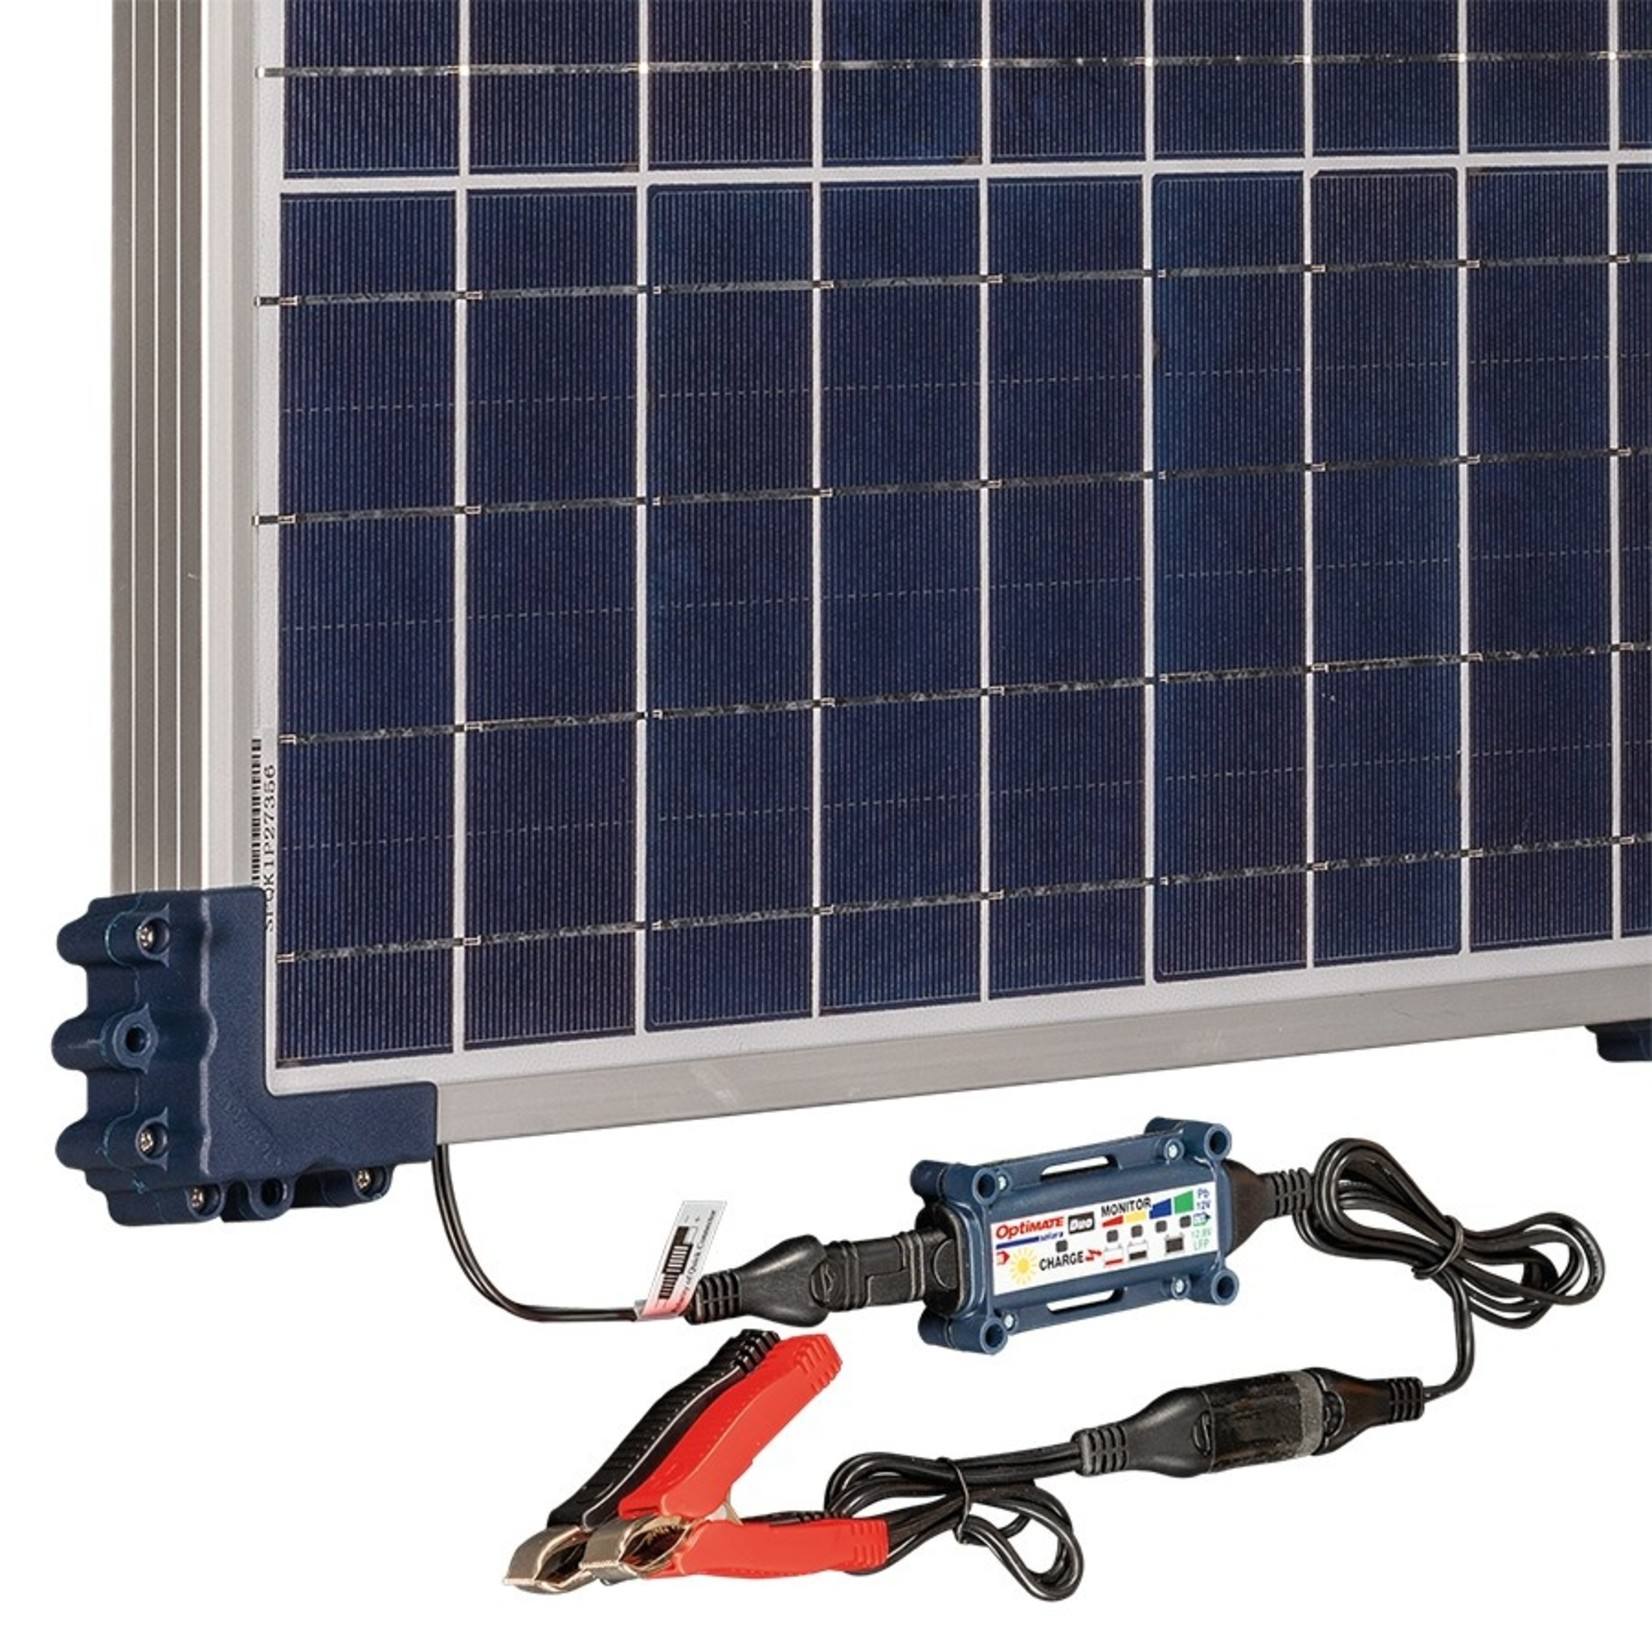 OptiMate DUO Solar 40W - Battery Charger